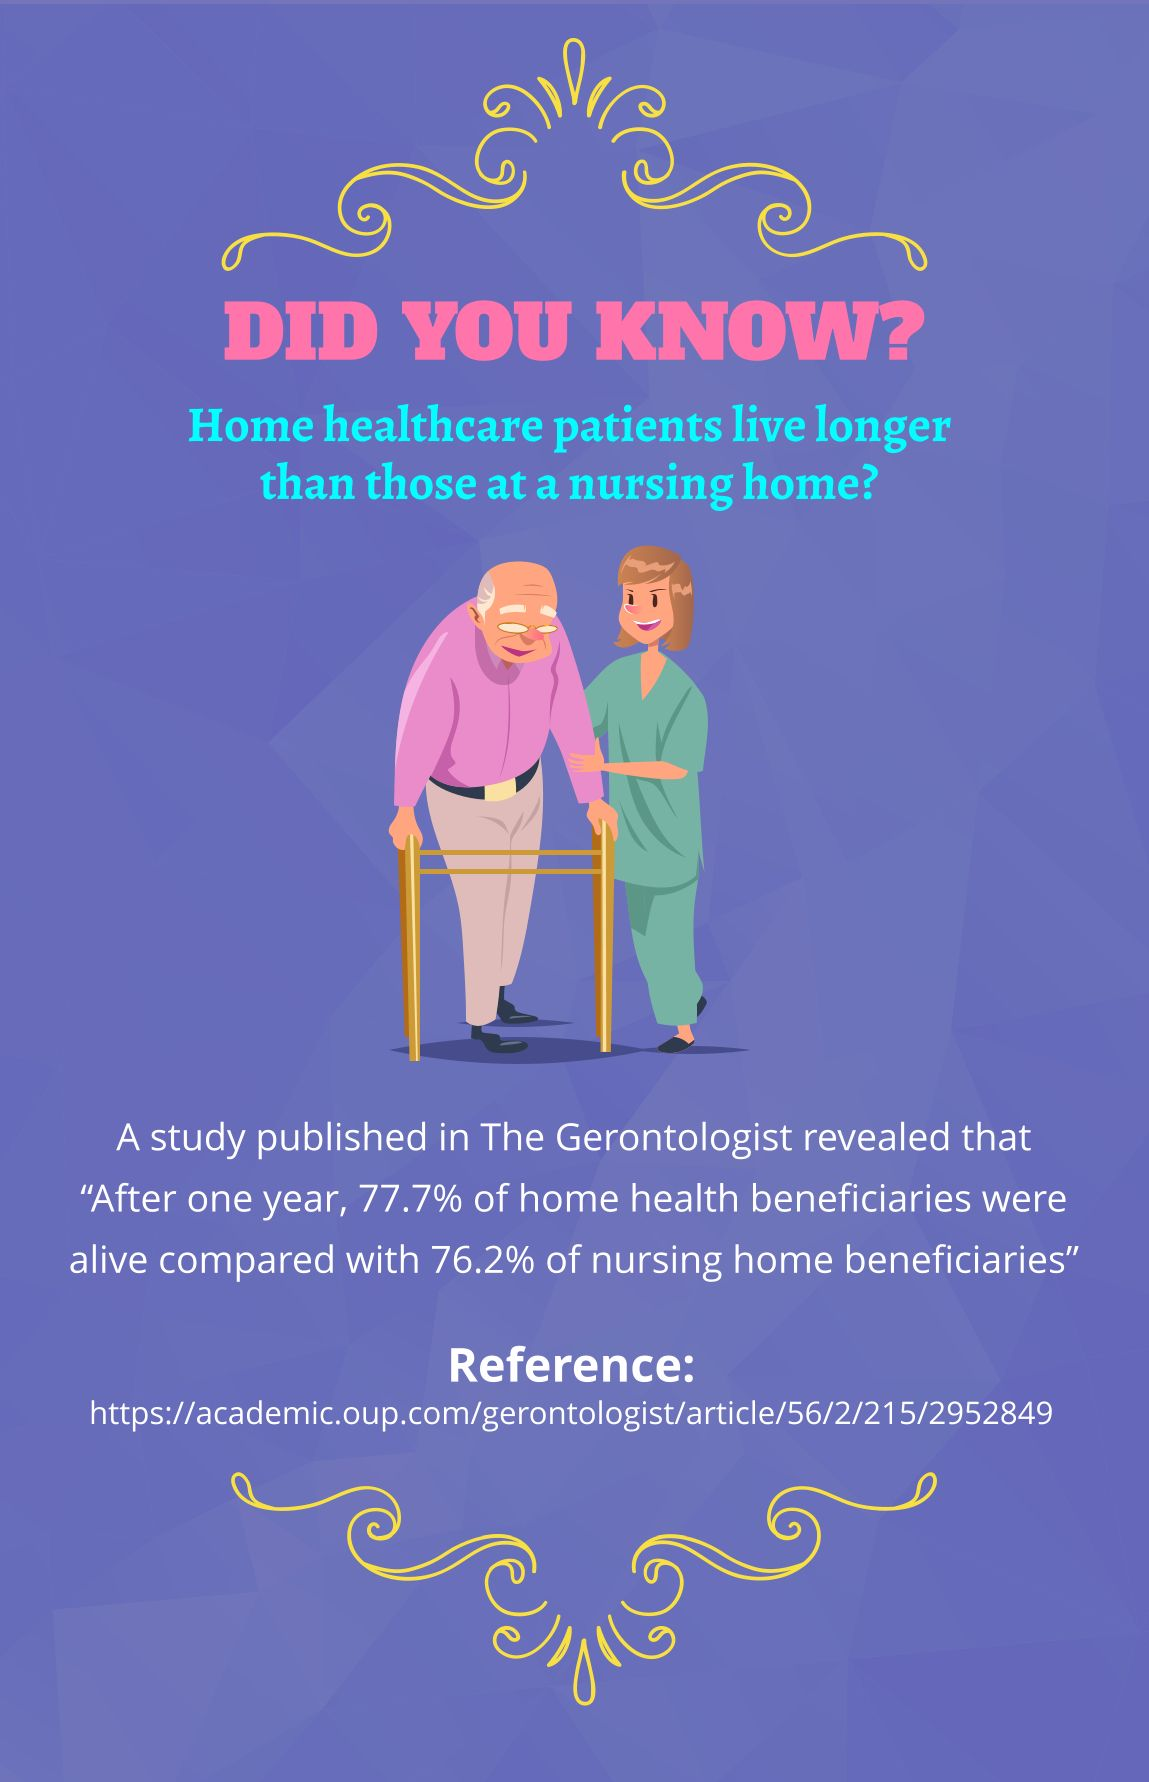 Did you know that home healthcare patients live longer